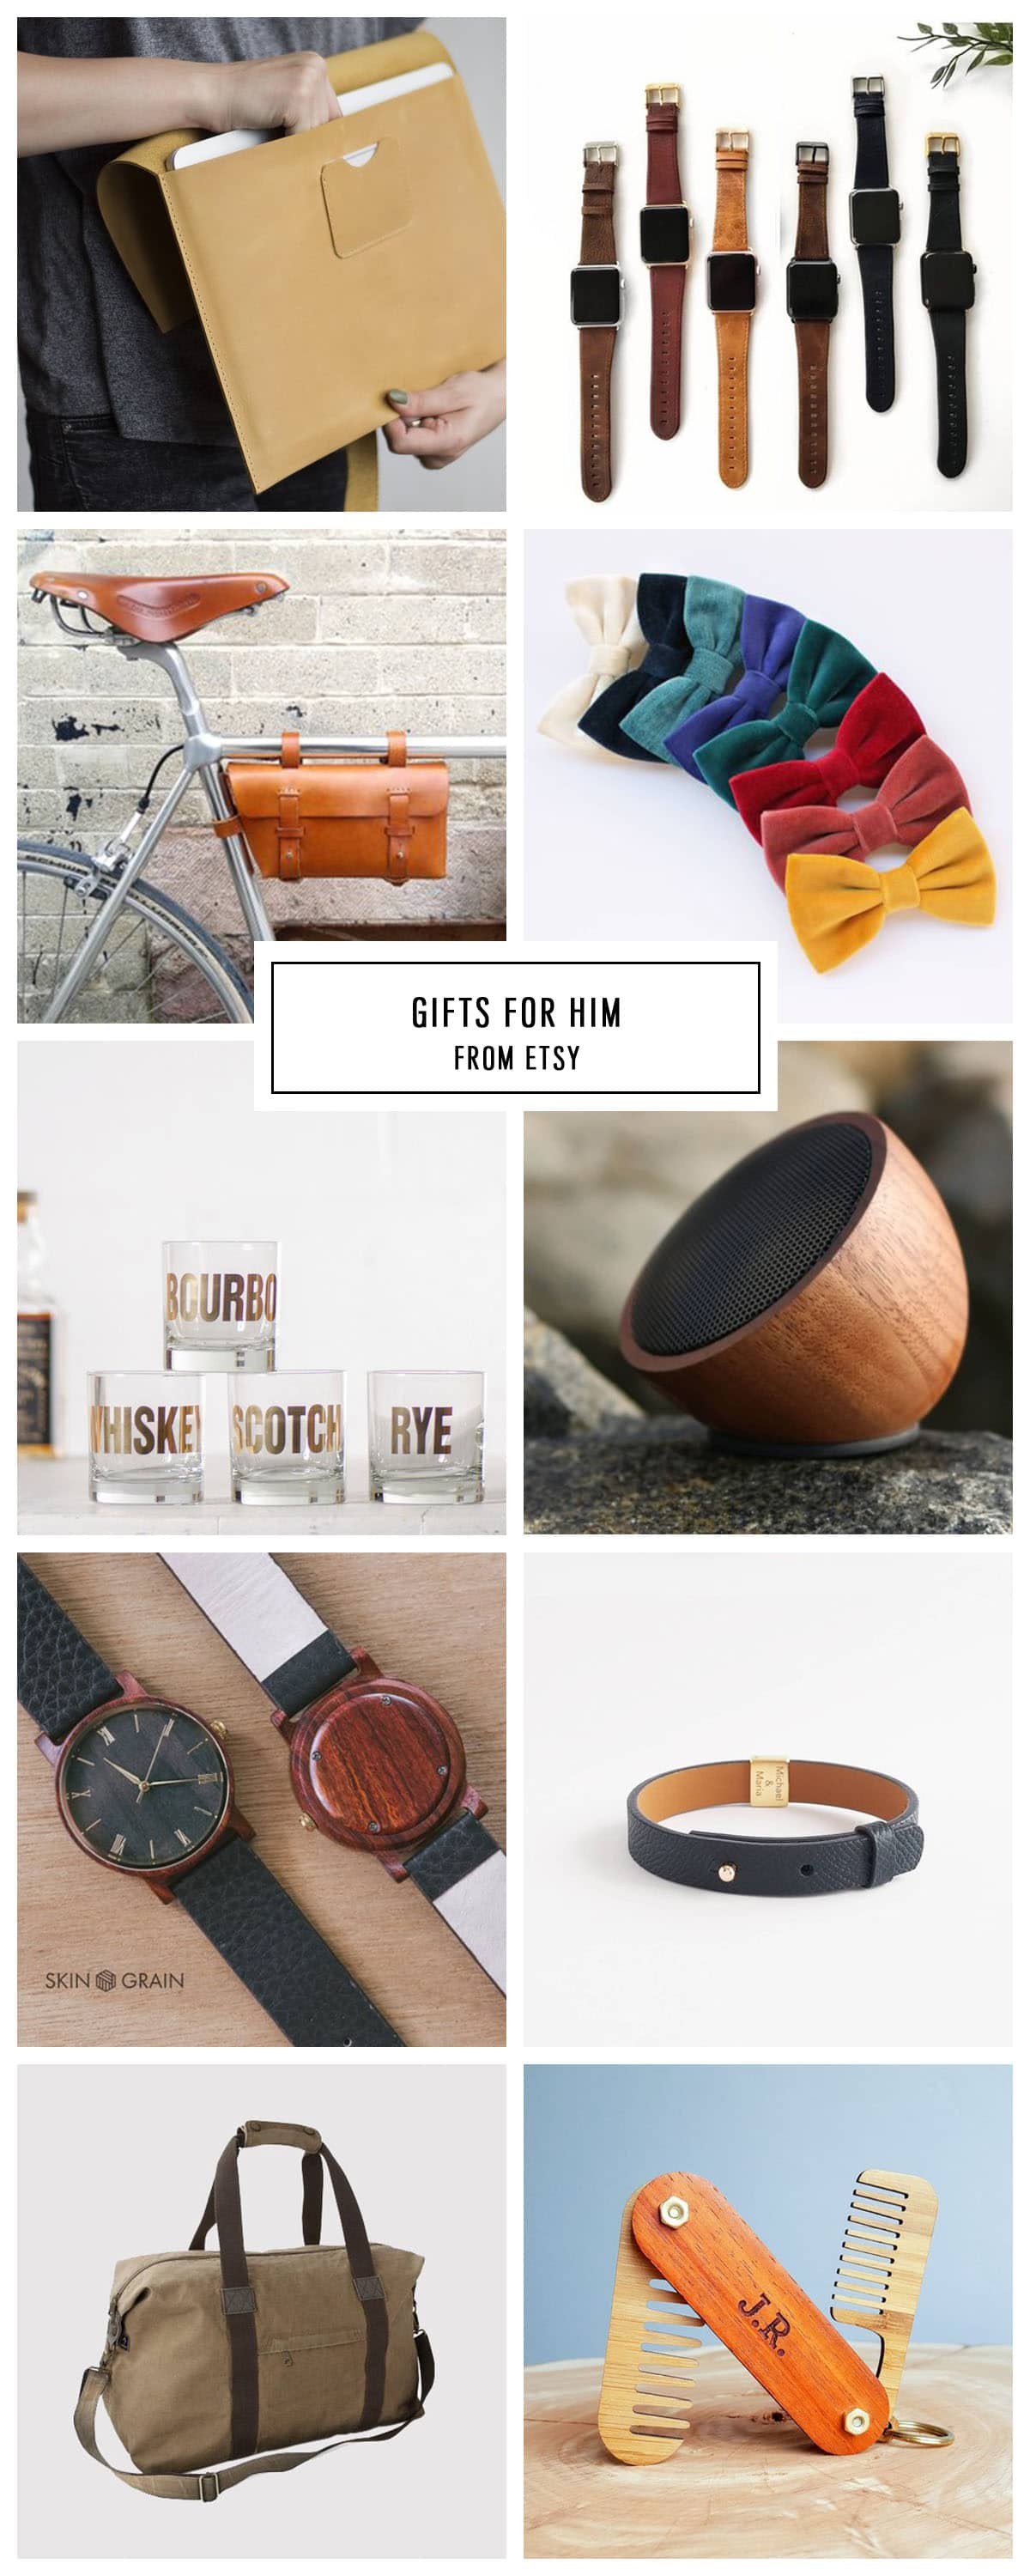 COMPLETE ETSY GIFT GUIDE FOR HIM UNDER $75 by Houston lifestyle blogger Ashley Rose of Sugar and Cloth -- #giftguide #christmas #entertaining #holidaygifts #presents